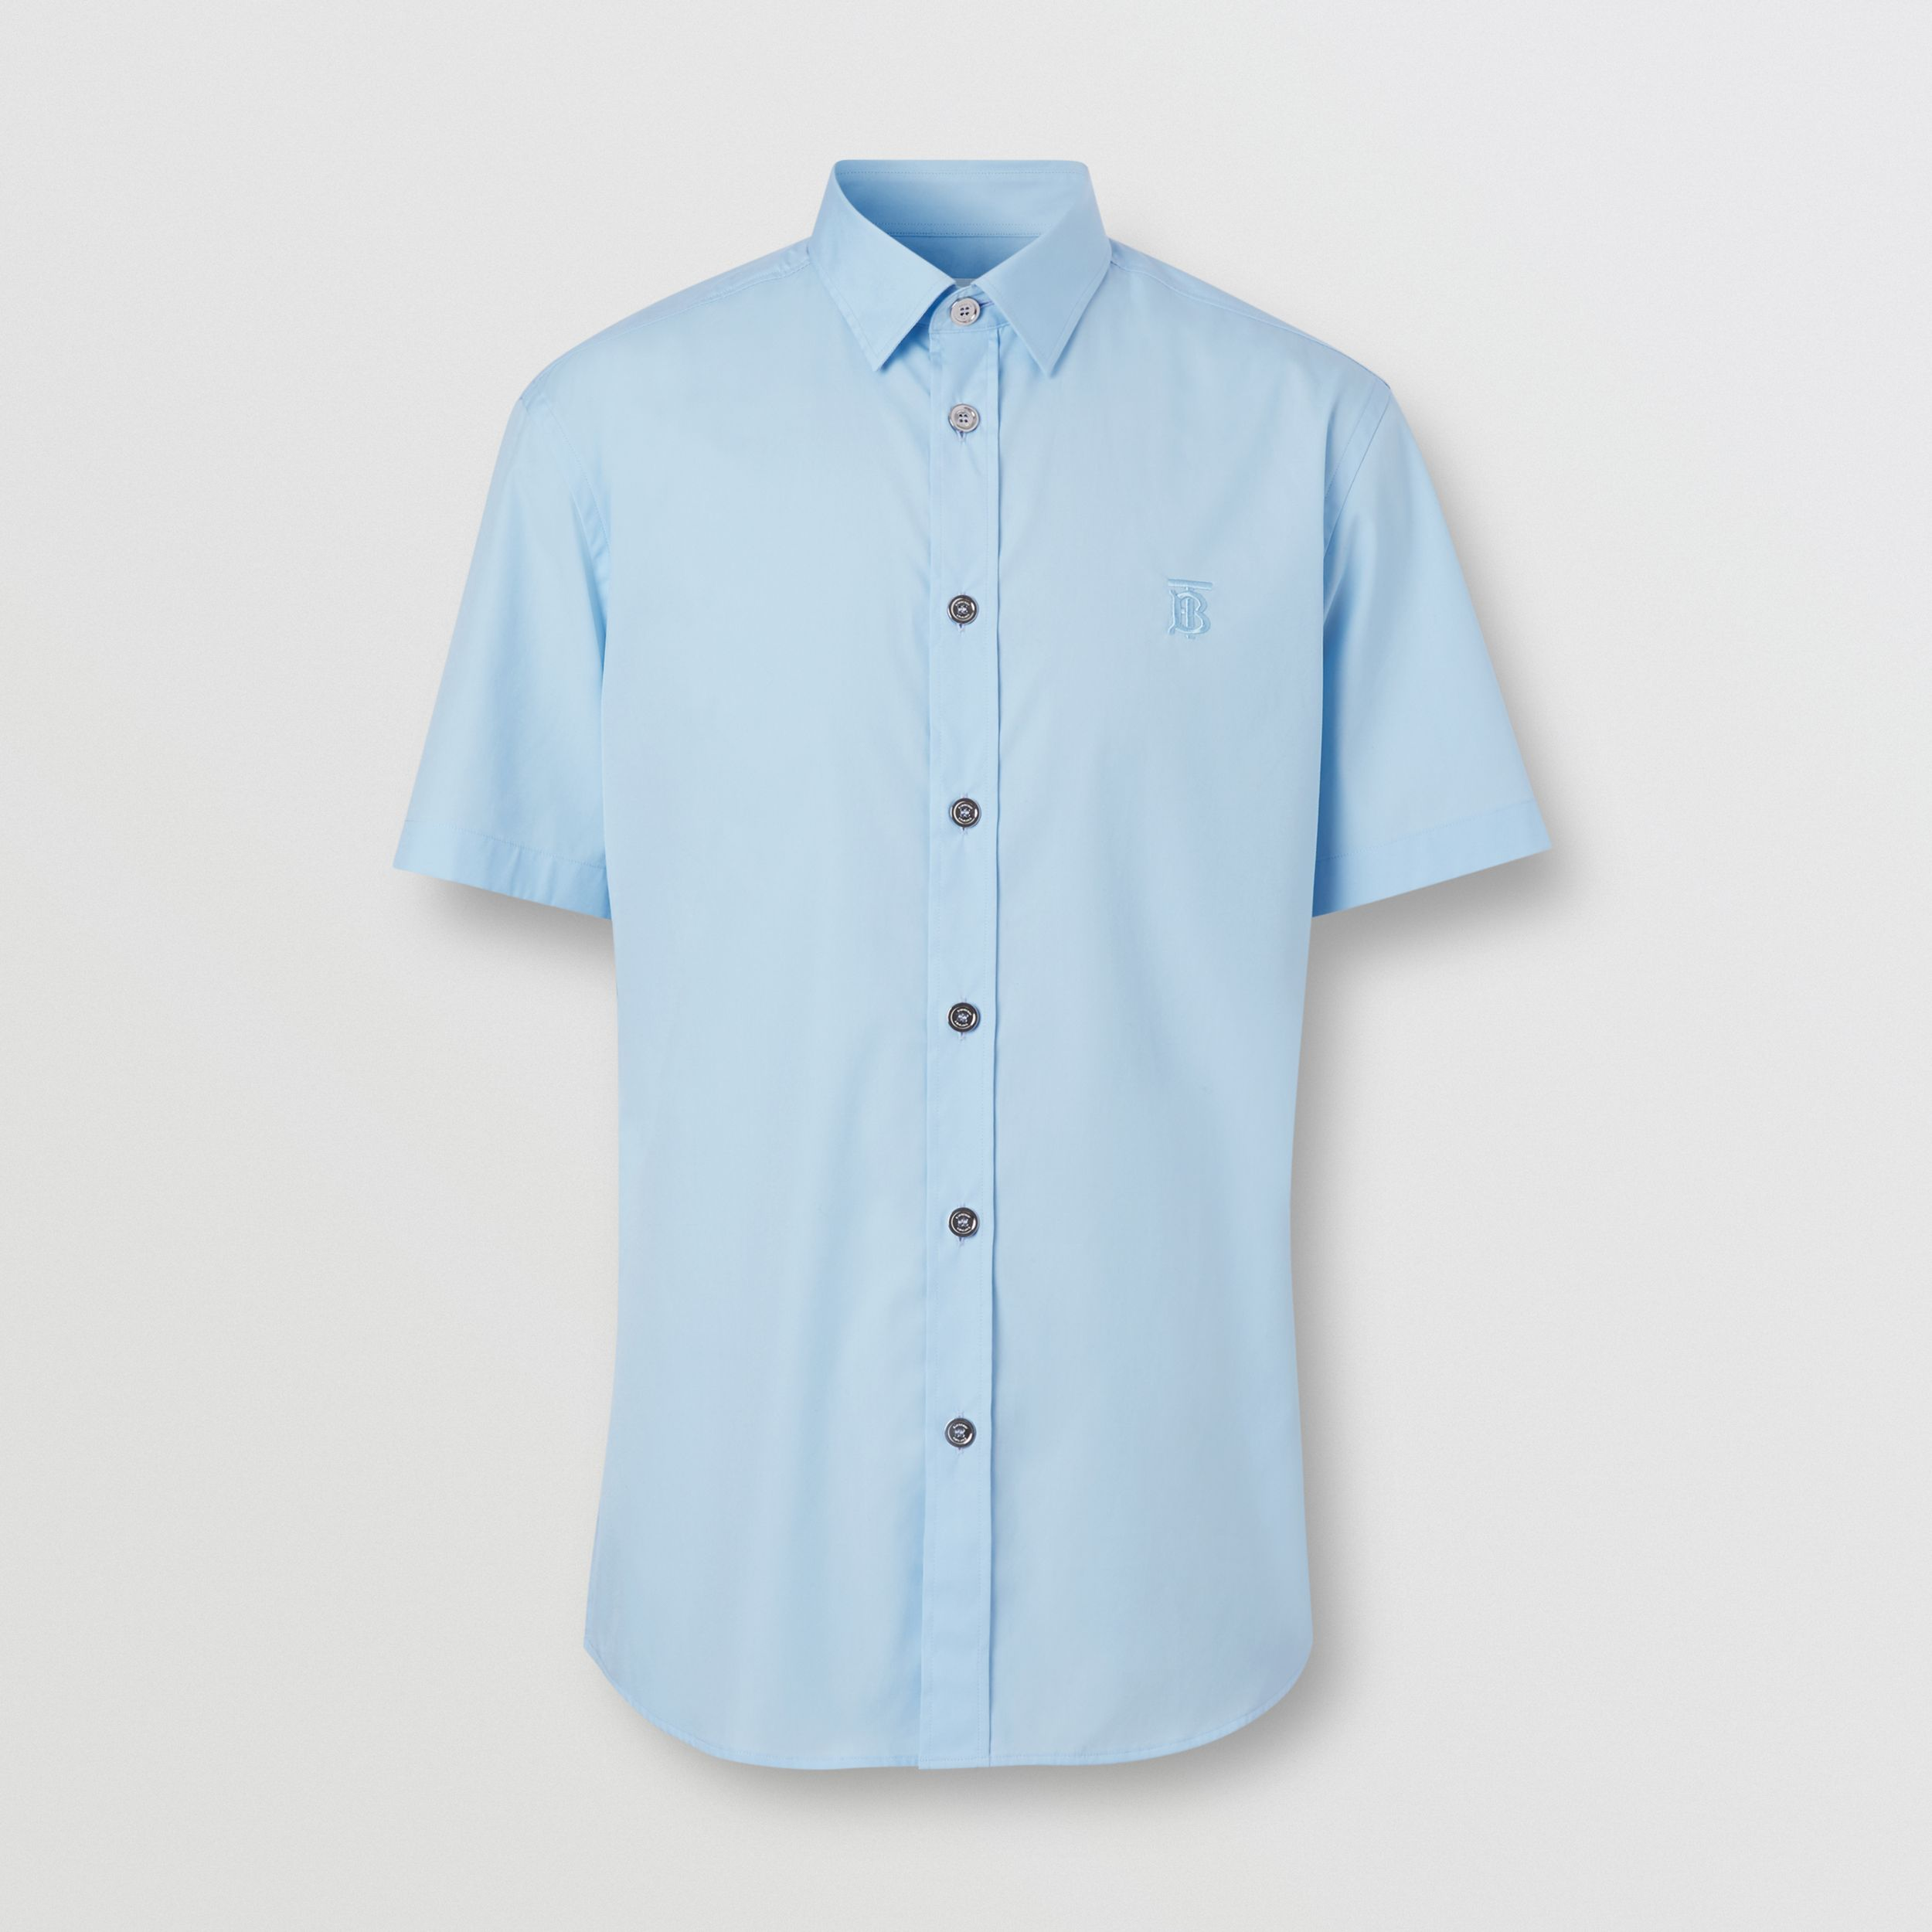 Short-sleeve Monogram Motif Stretch Cotton Shirt in Pale Blue - Men | Burberry Canada - 4